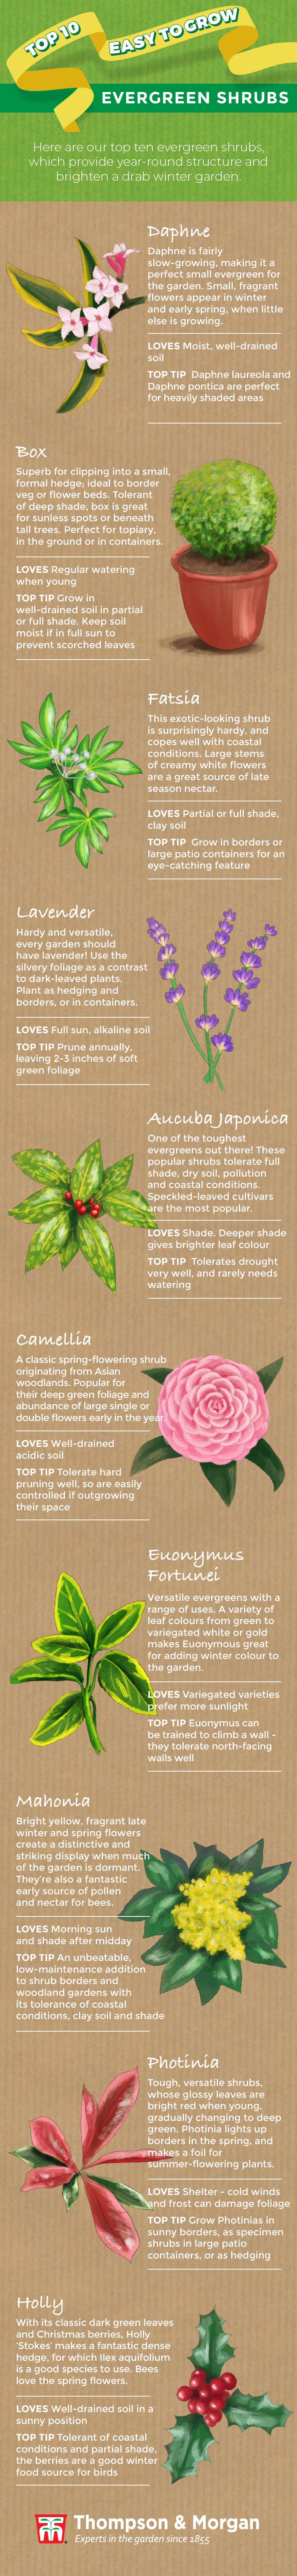 top ten evergreen shrubs infographic from thompson & morgan